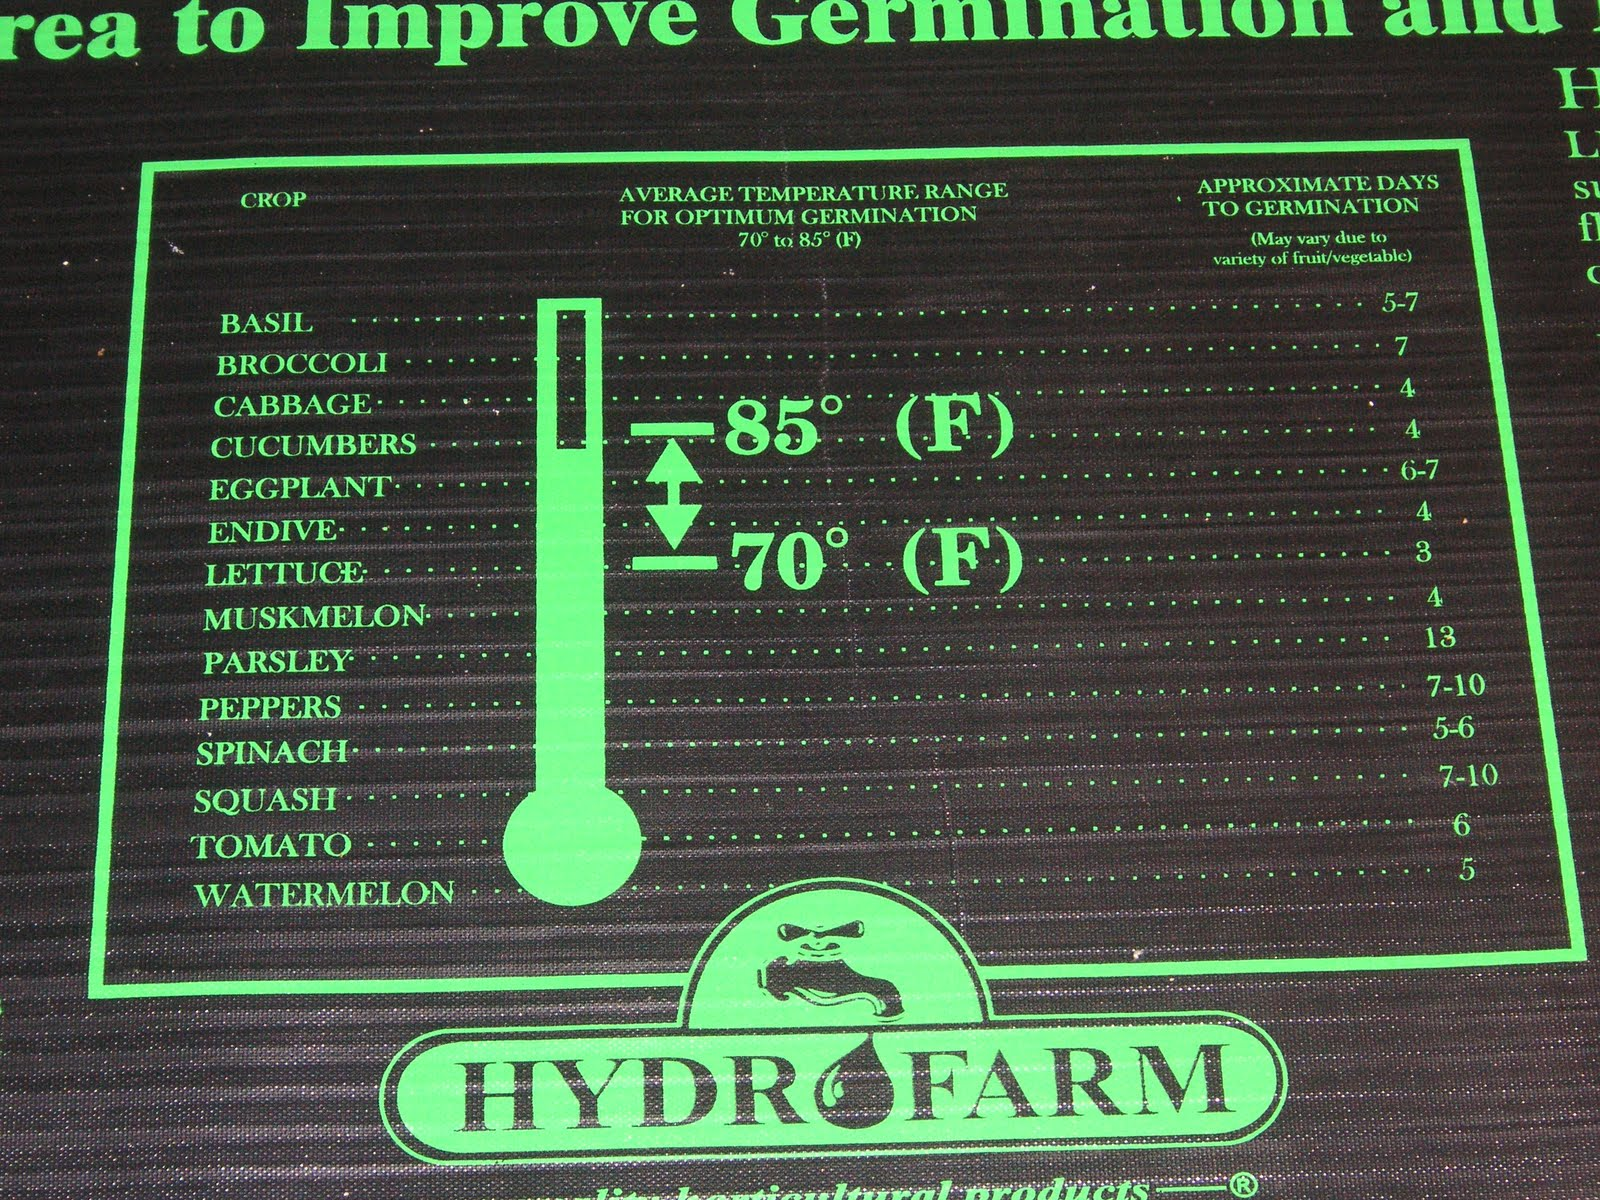 When The Greenhouse Is Cold In Spring Mat Will Warm Root Zone Of Plants About 10 20f Warmer Than Air Around It